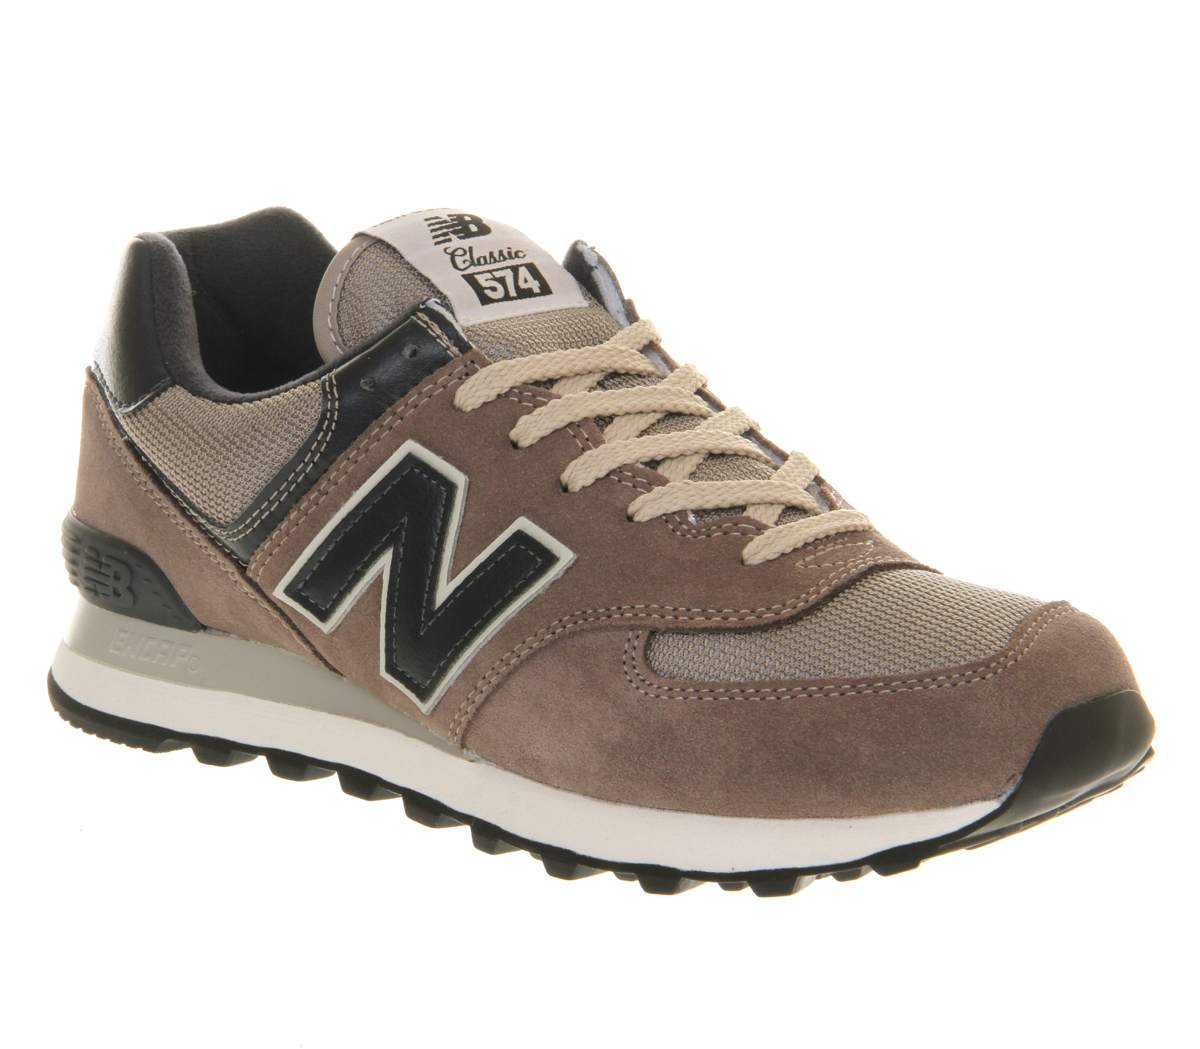 mens new balance new balance m574 grey navy trainers shoes. Black Bedroom Furniture Sets. Home Design Ideas